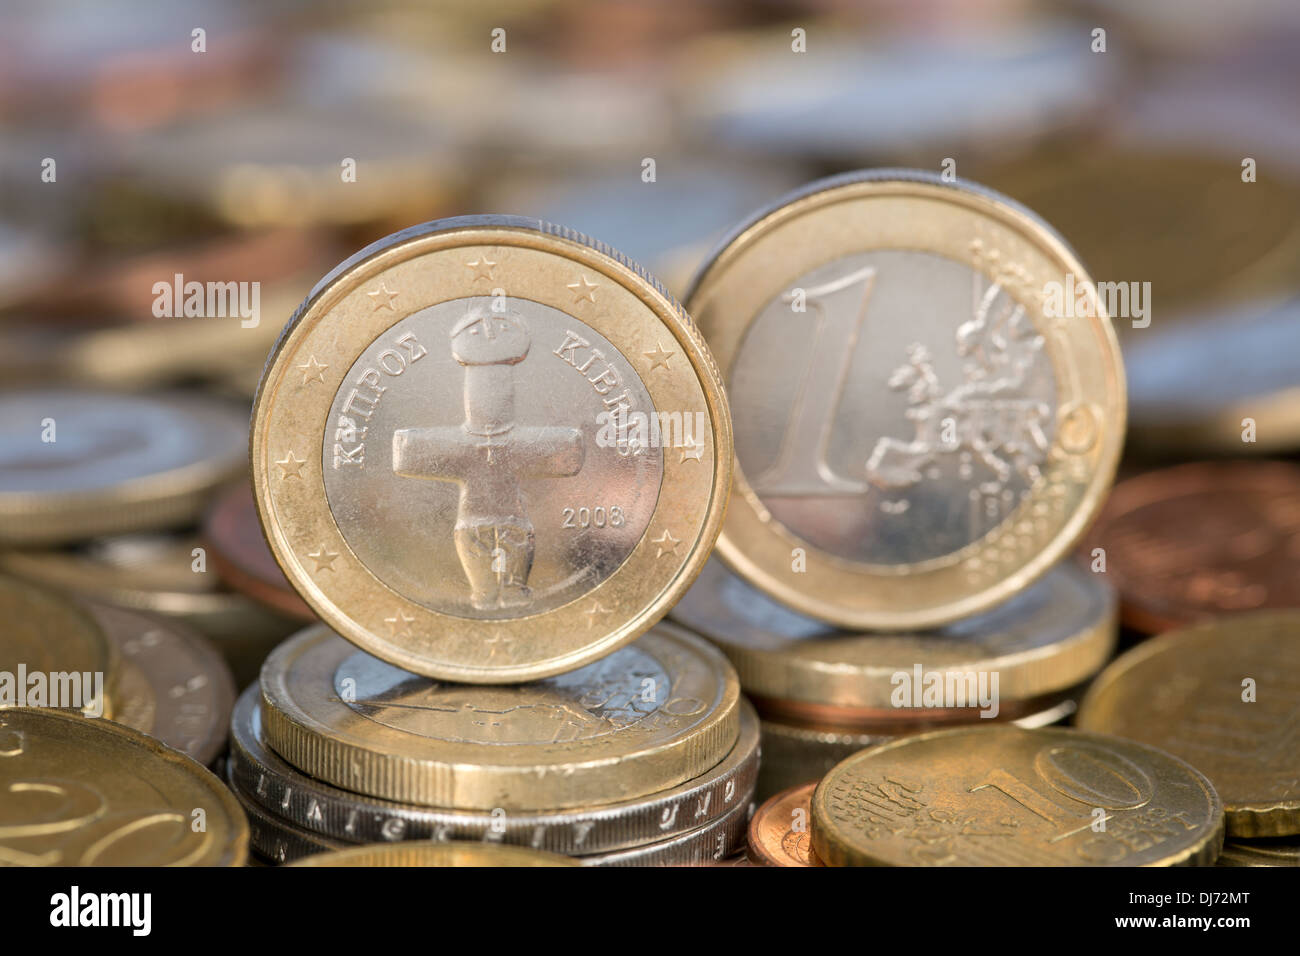 A one Euro coin from the EU member country Cyprus - Stock Image